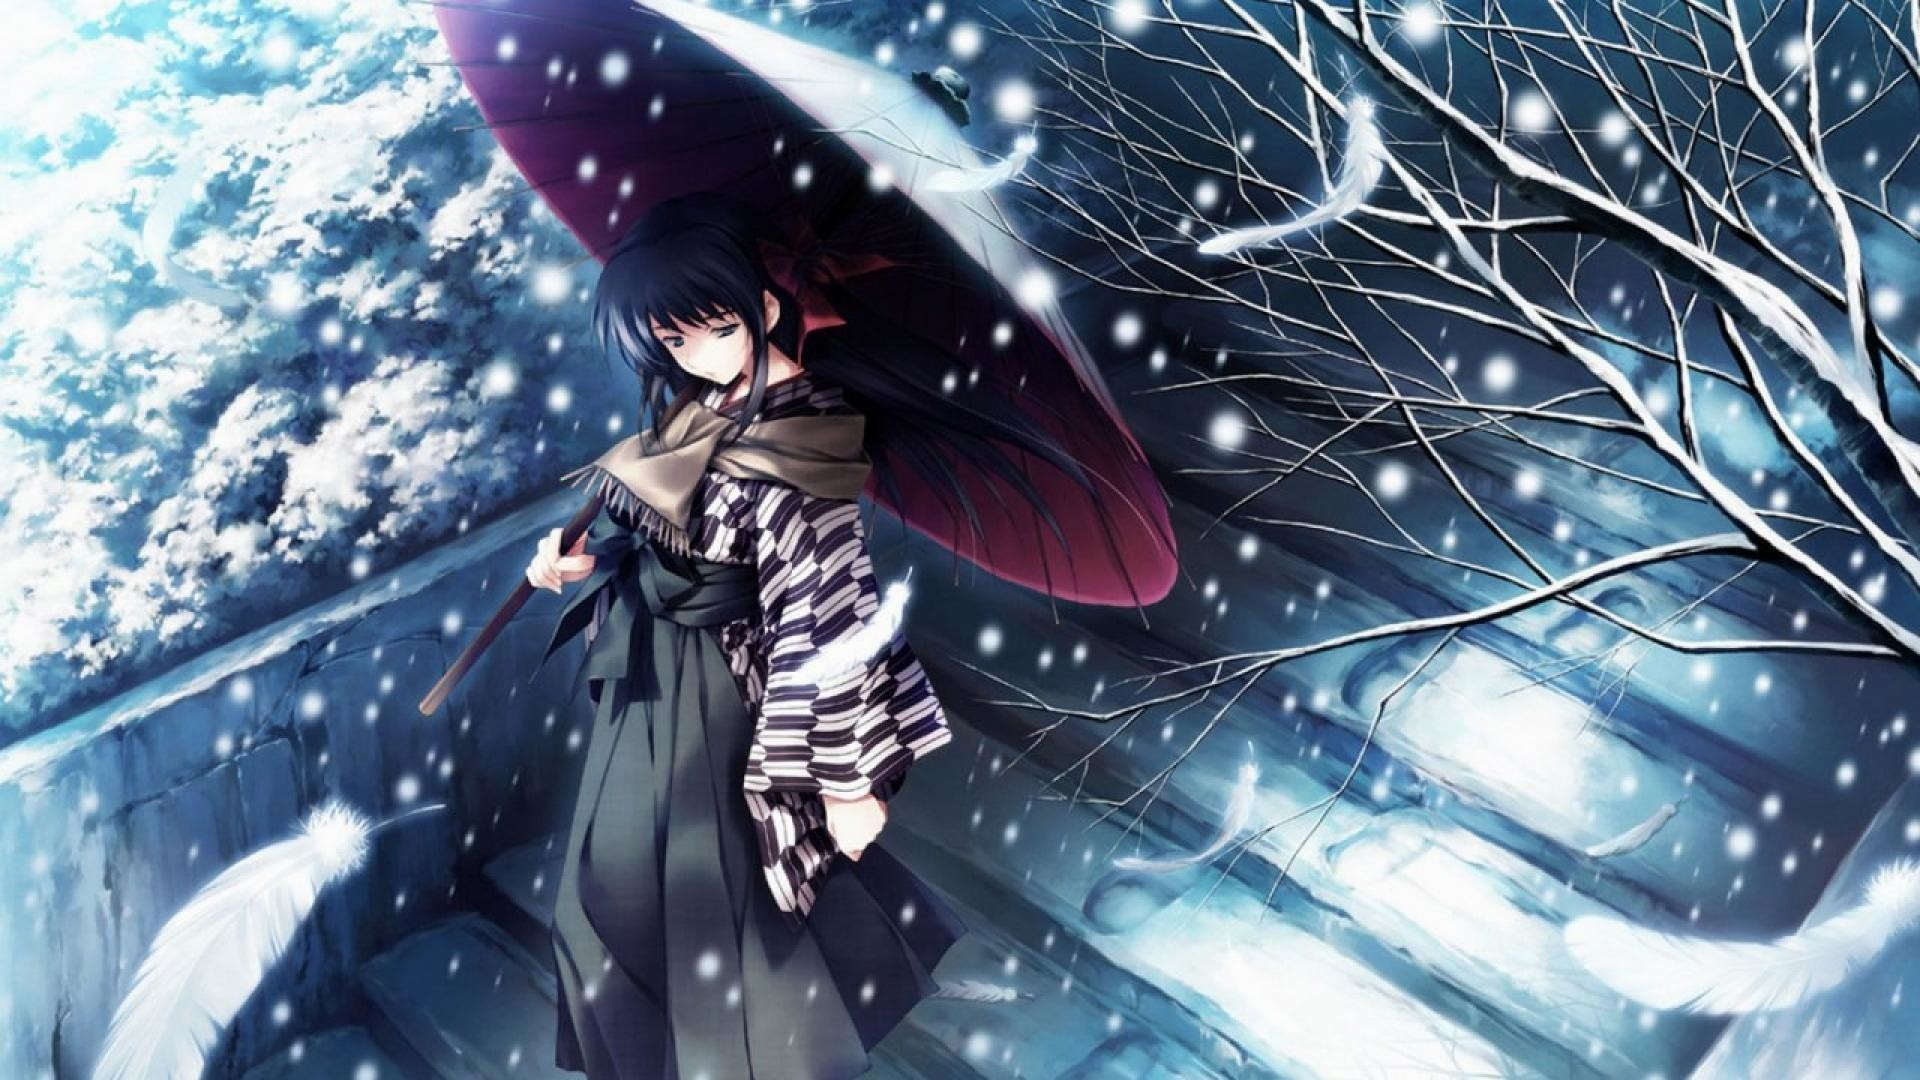 Winter-Girl-Anime-Wallpapers-HD-download-free